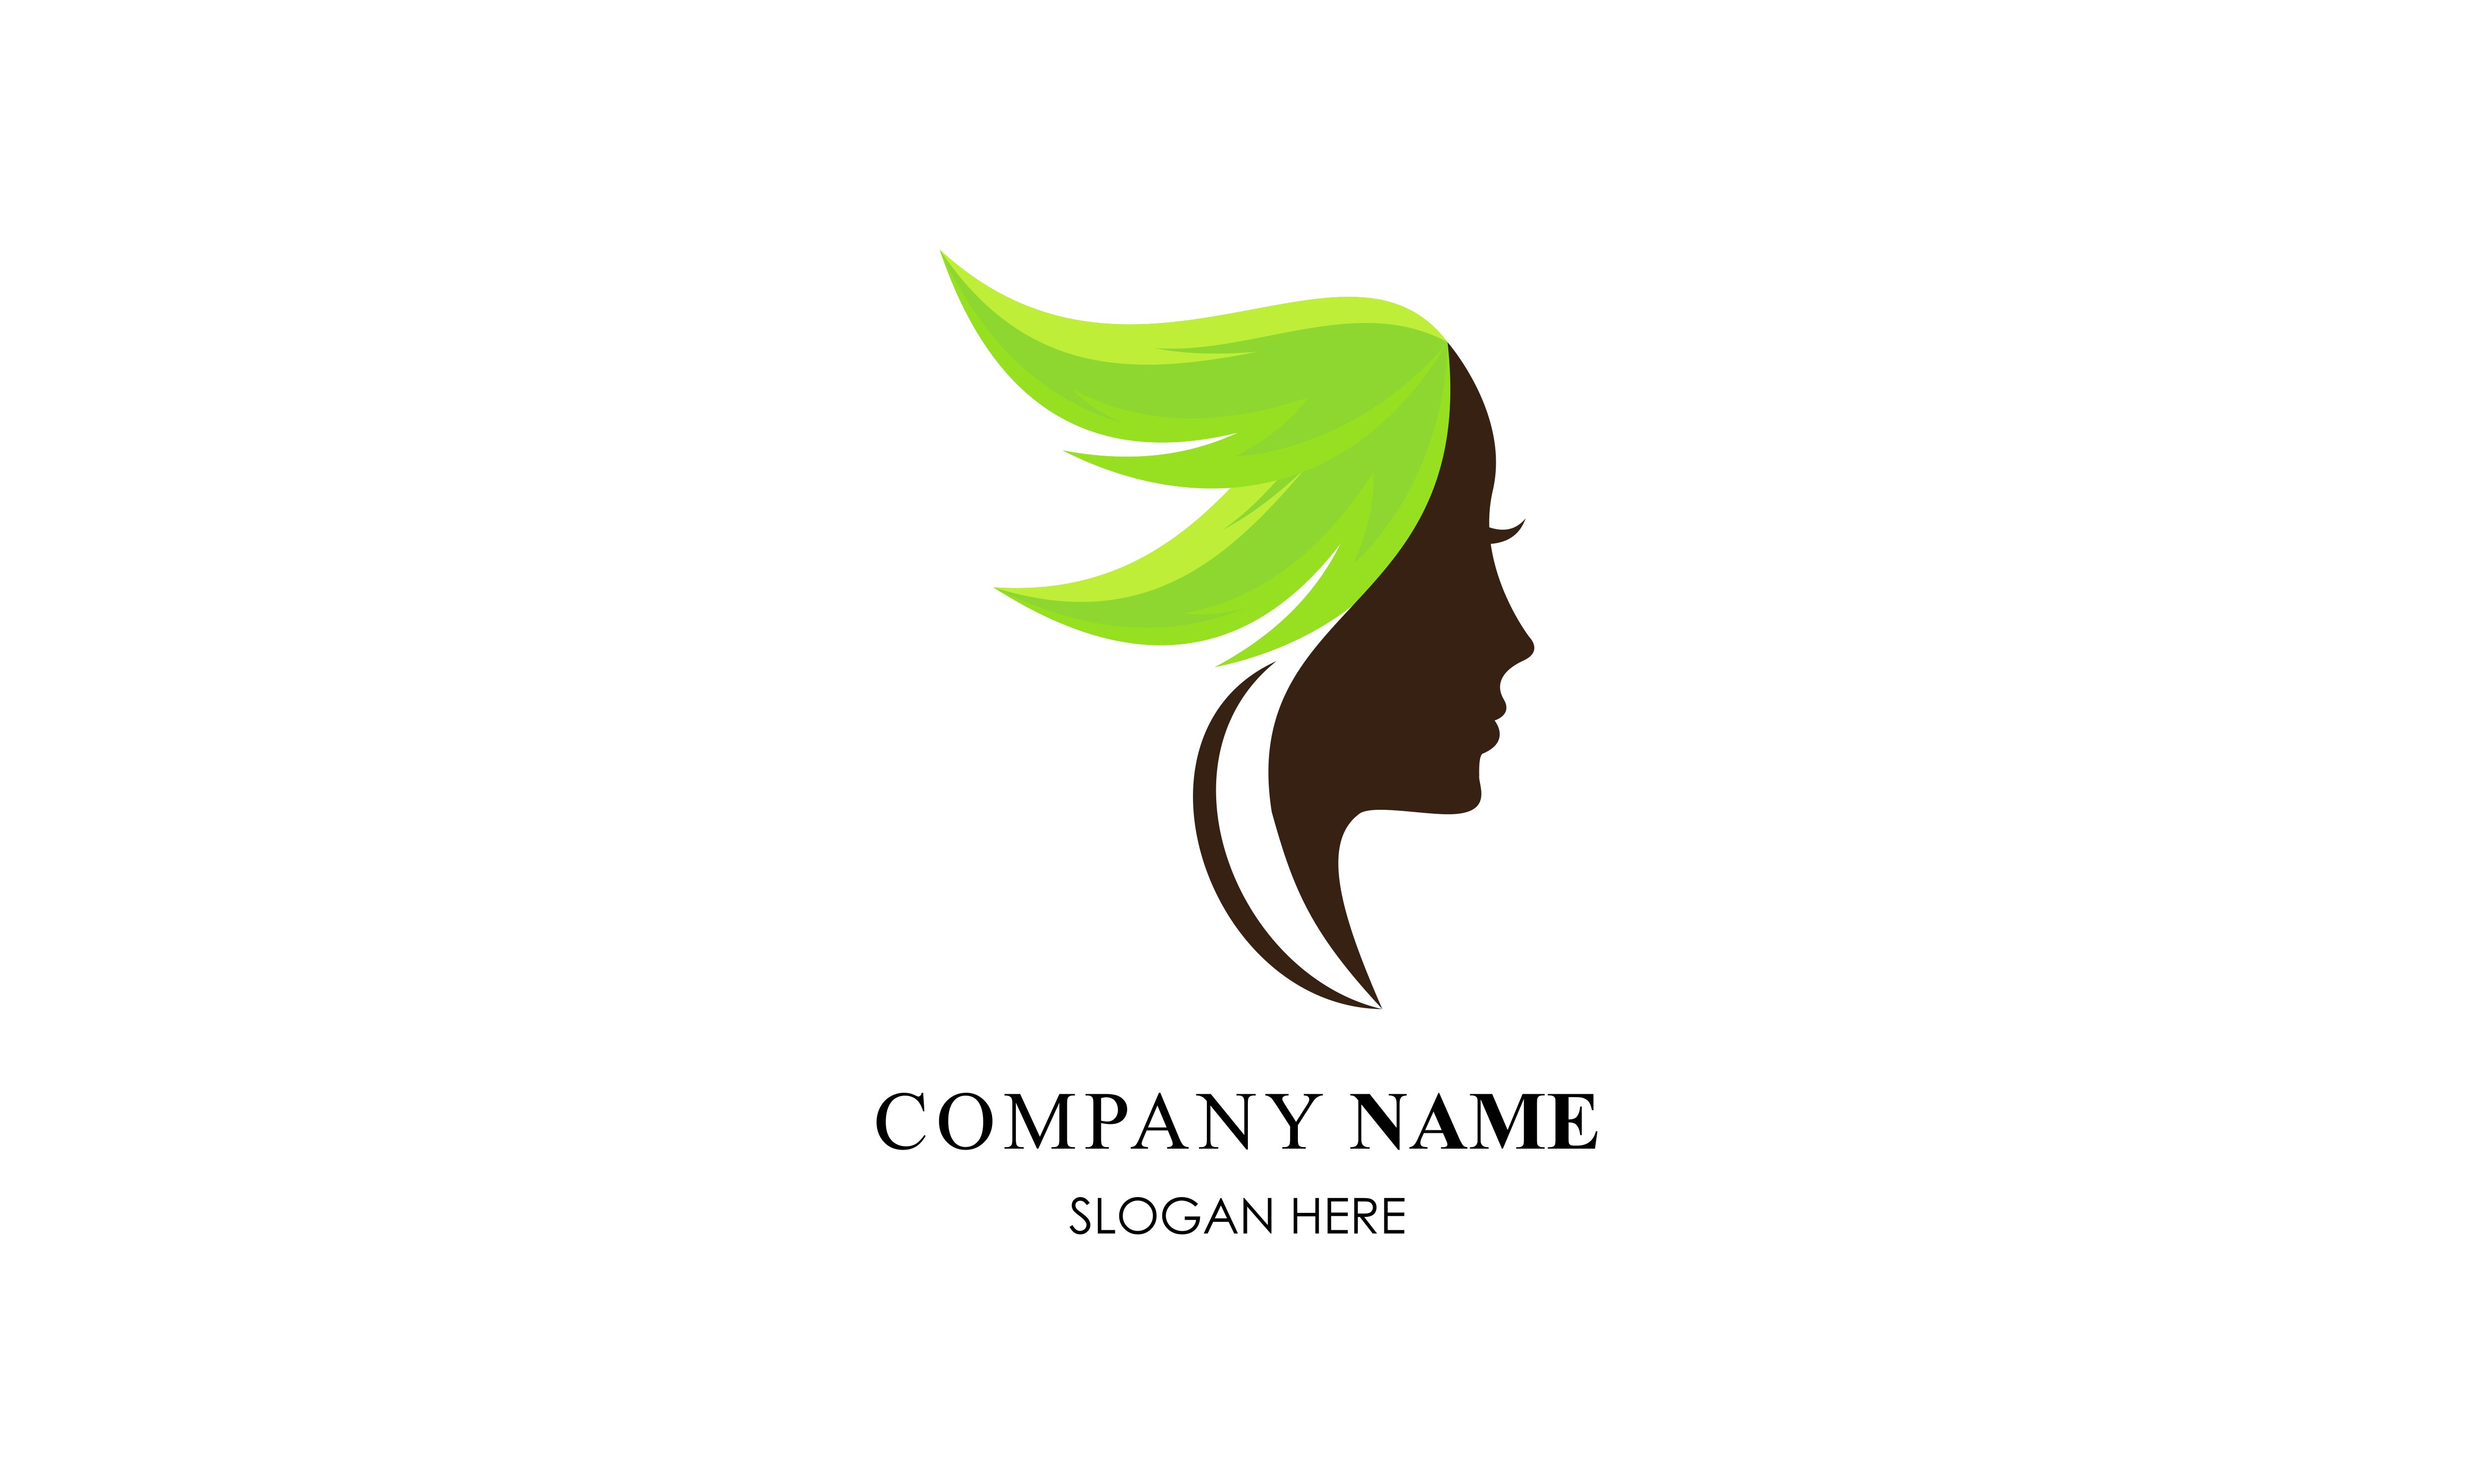 Download Free Face Leaf Woman Ecology Green Leaf Logo Graphic By Deemka Studio for Cricut Explore, Silhouette and other cutting machines.